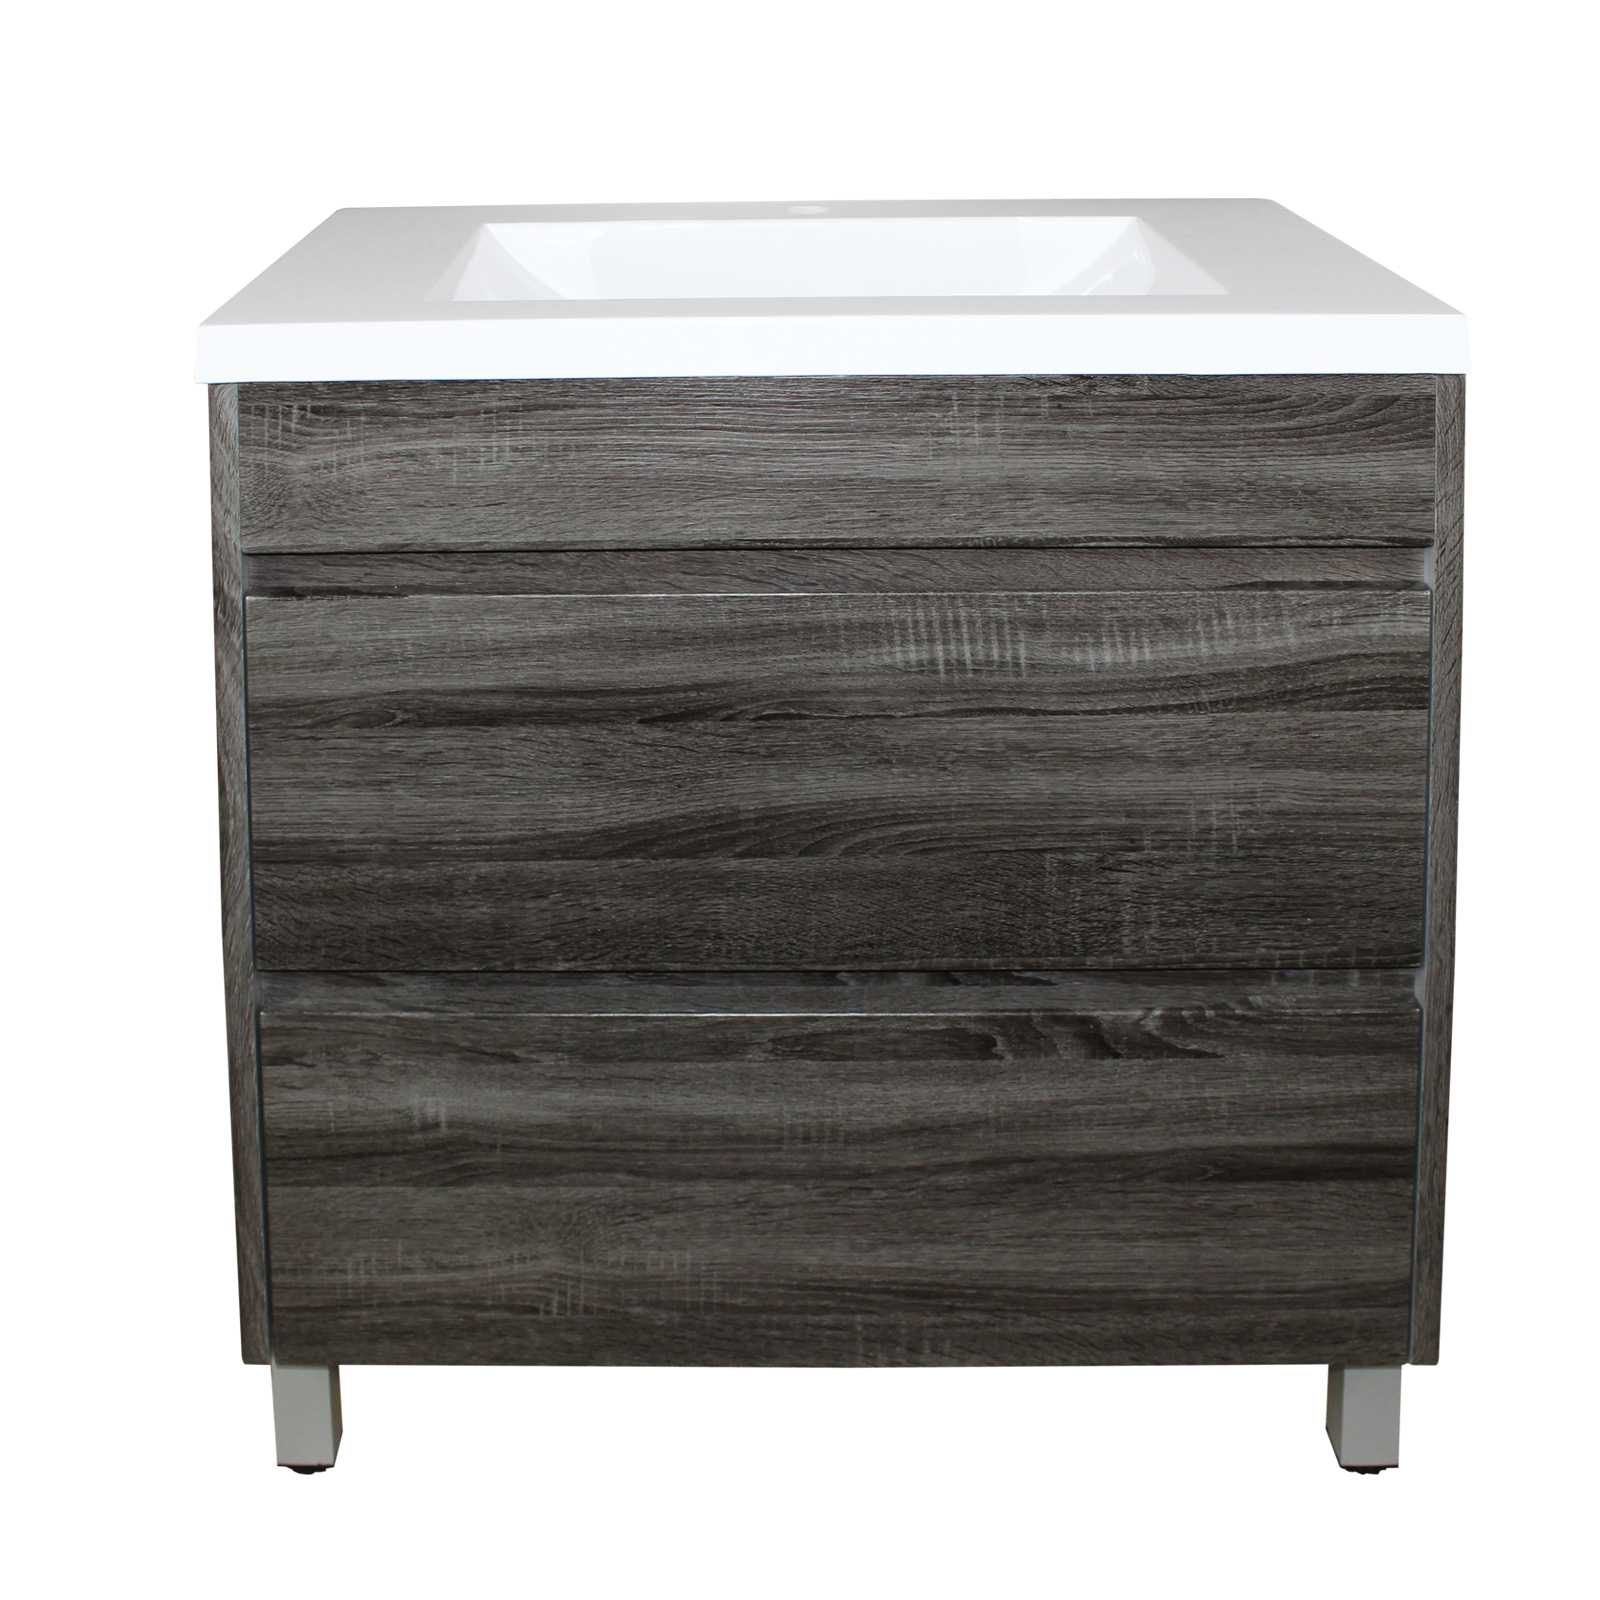 600mm Dark Grey Wood Grain Drawer Vanity on Legs